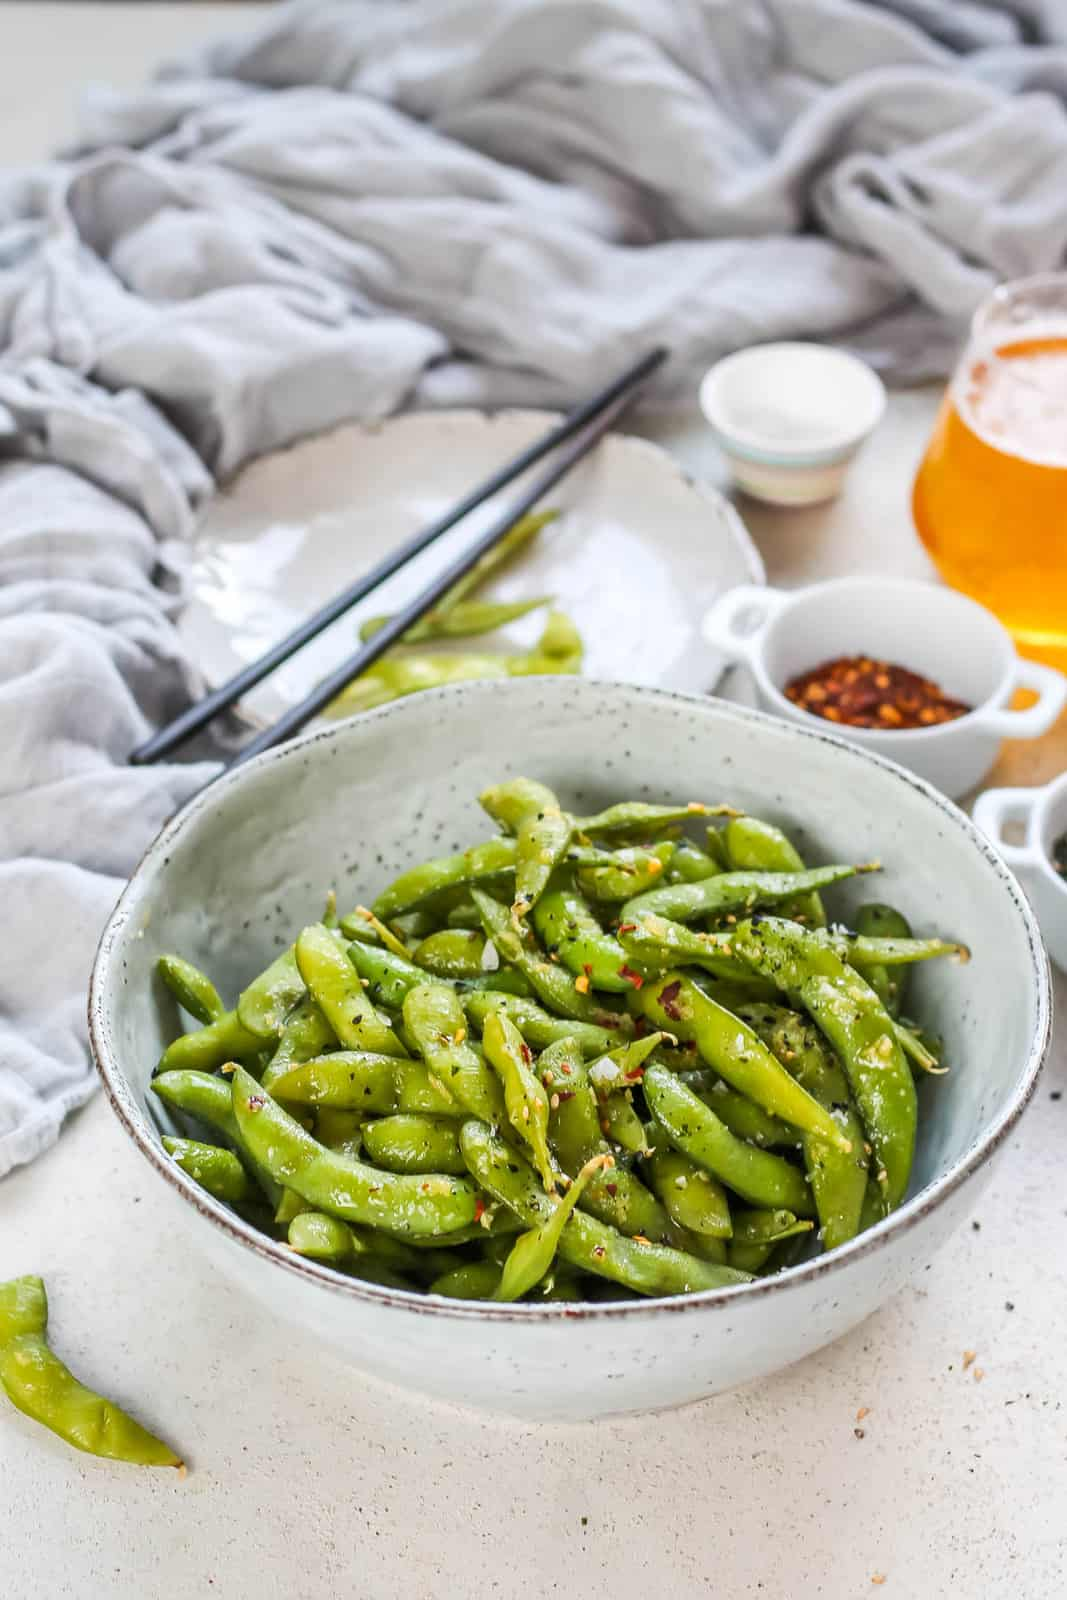 a bowl of spicy edamame with some beer and chili flakes in the background